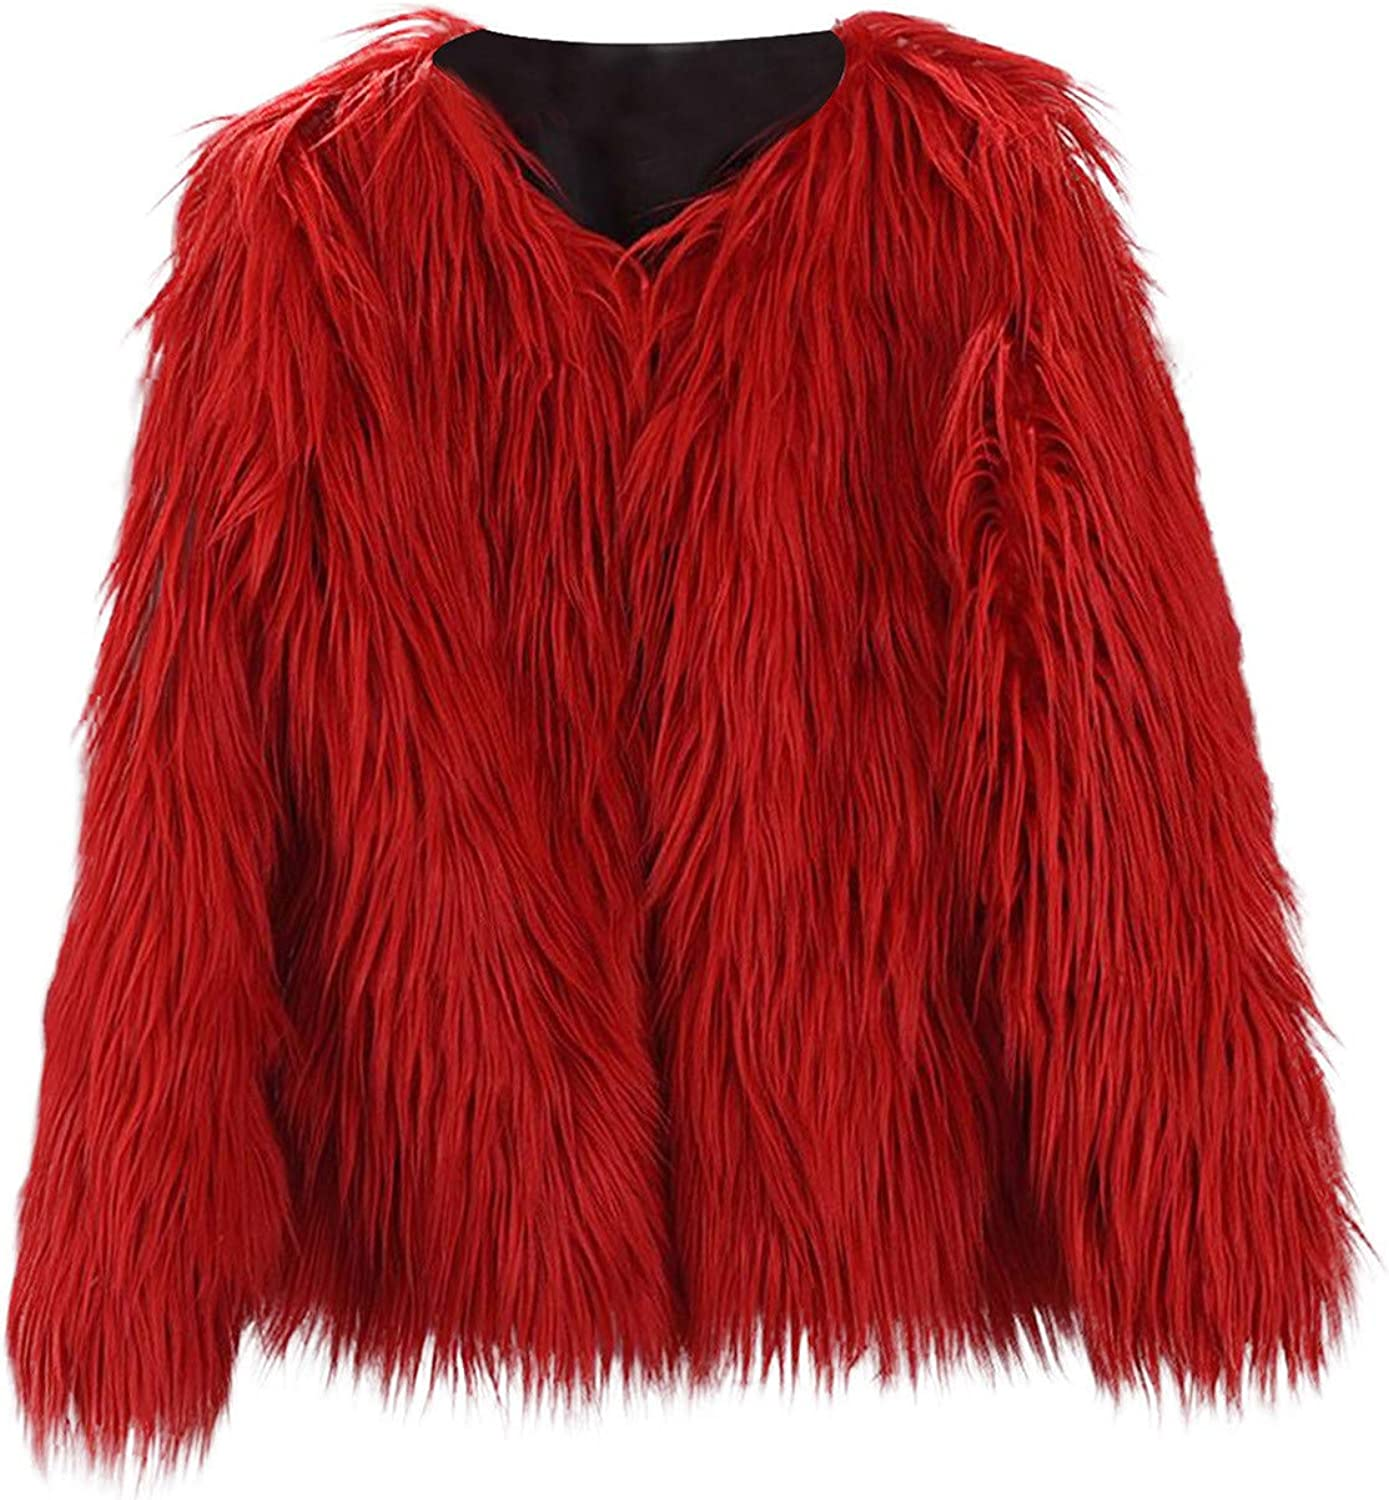 Toddler Baby Ranking TOP7 Kids Girl Fashion Fluffy Long Fur Miami Mall Faux Coat Sleeve